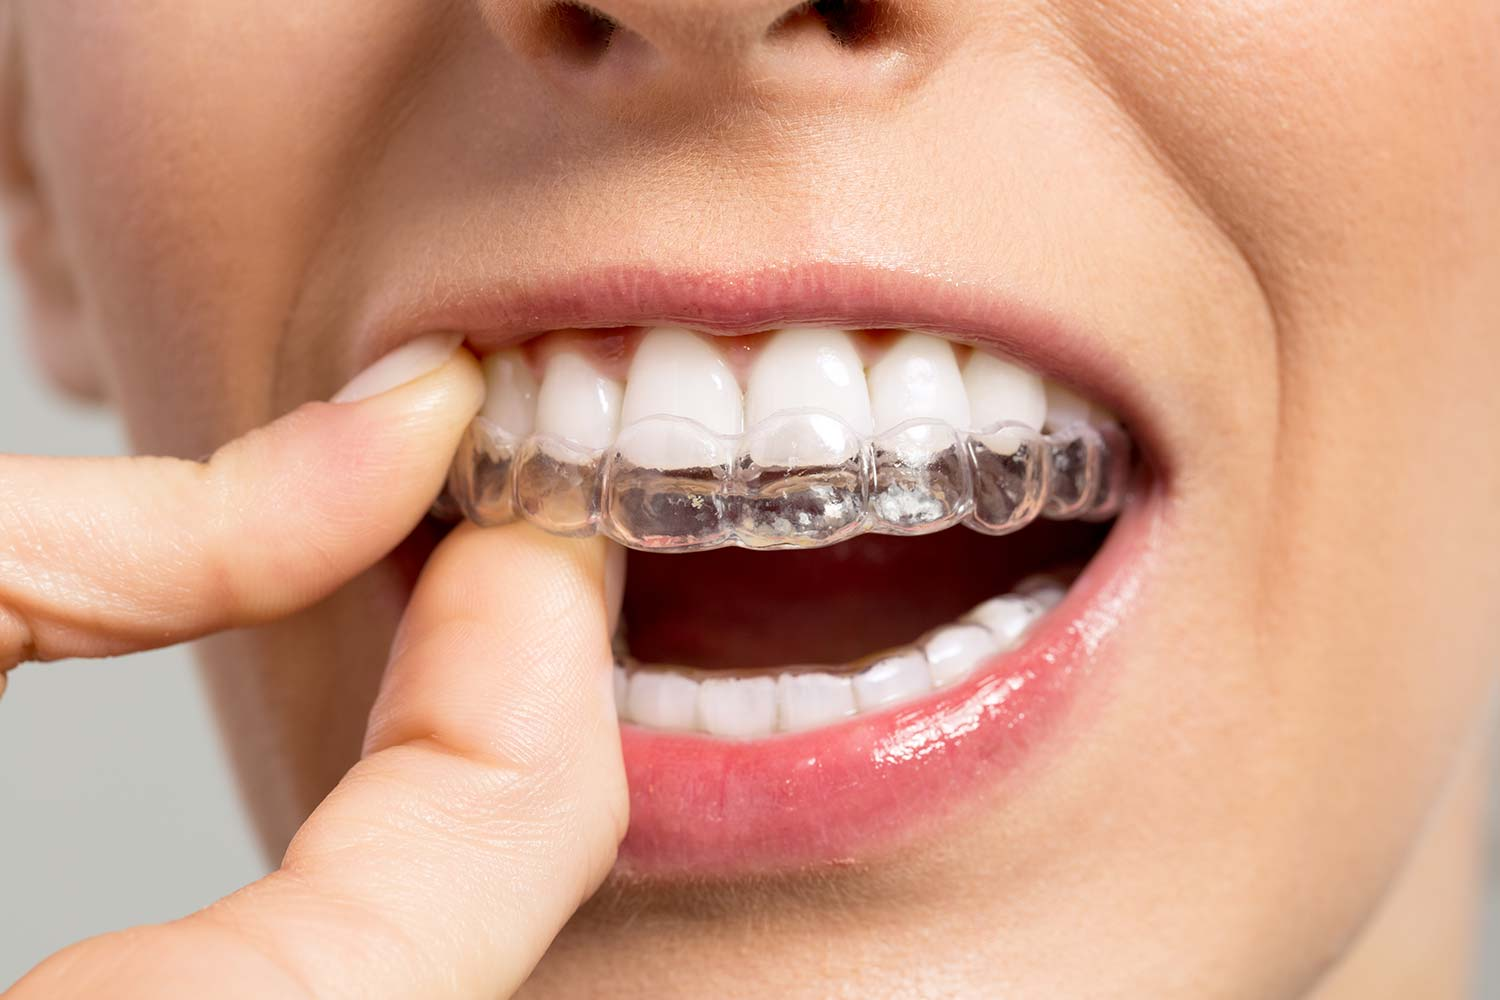 Woman putting orthodontic clear braces on her teeth